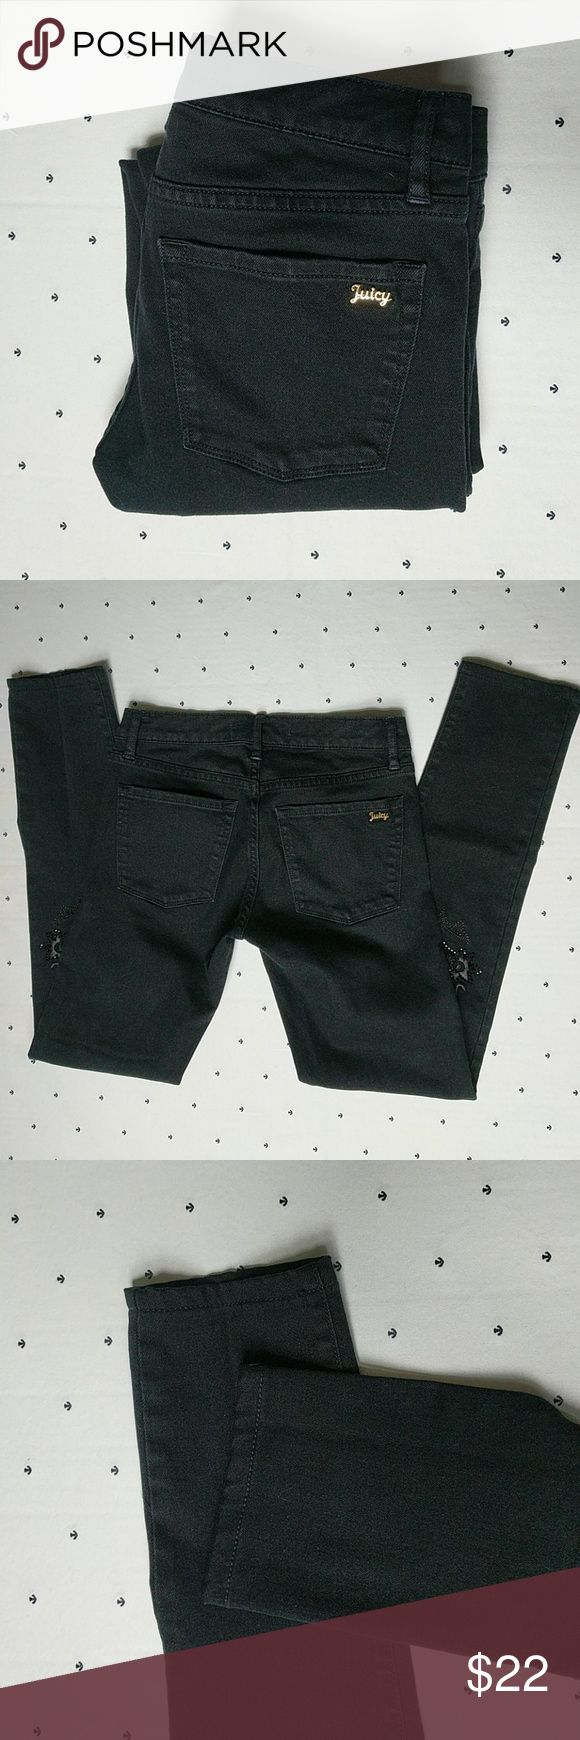 """Juicy Couture Skinny Bling Jeans Beaded and embroidered black skinny jeans. 28"""" inseam. EUC Juicy Couture Jeans Skinny"""